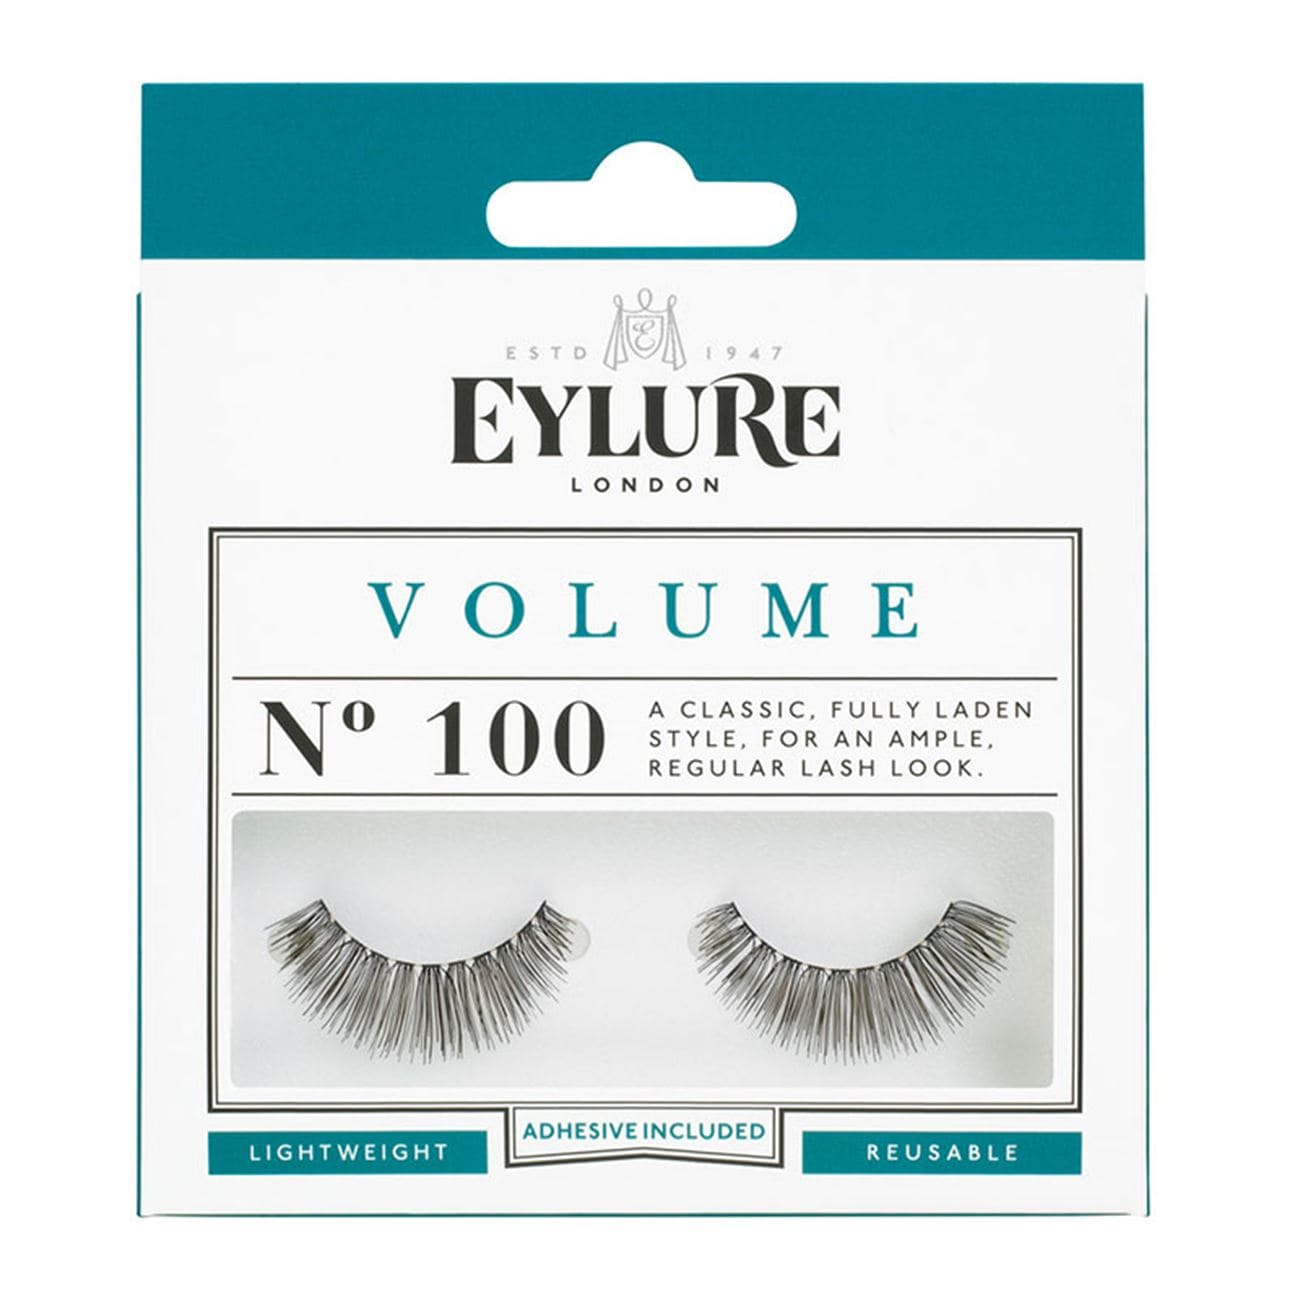 Volume No. 100 Lashes